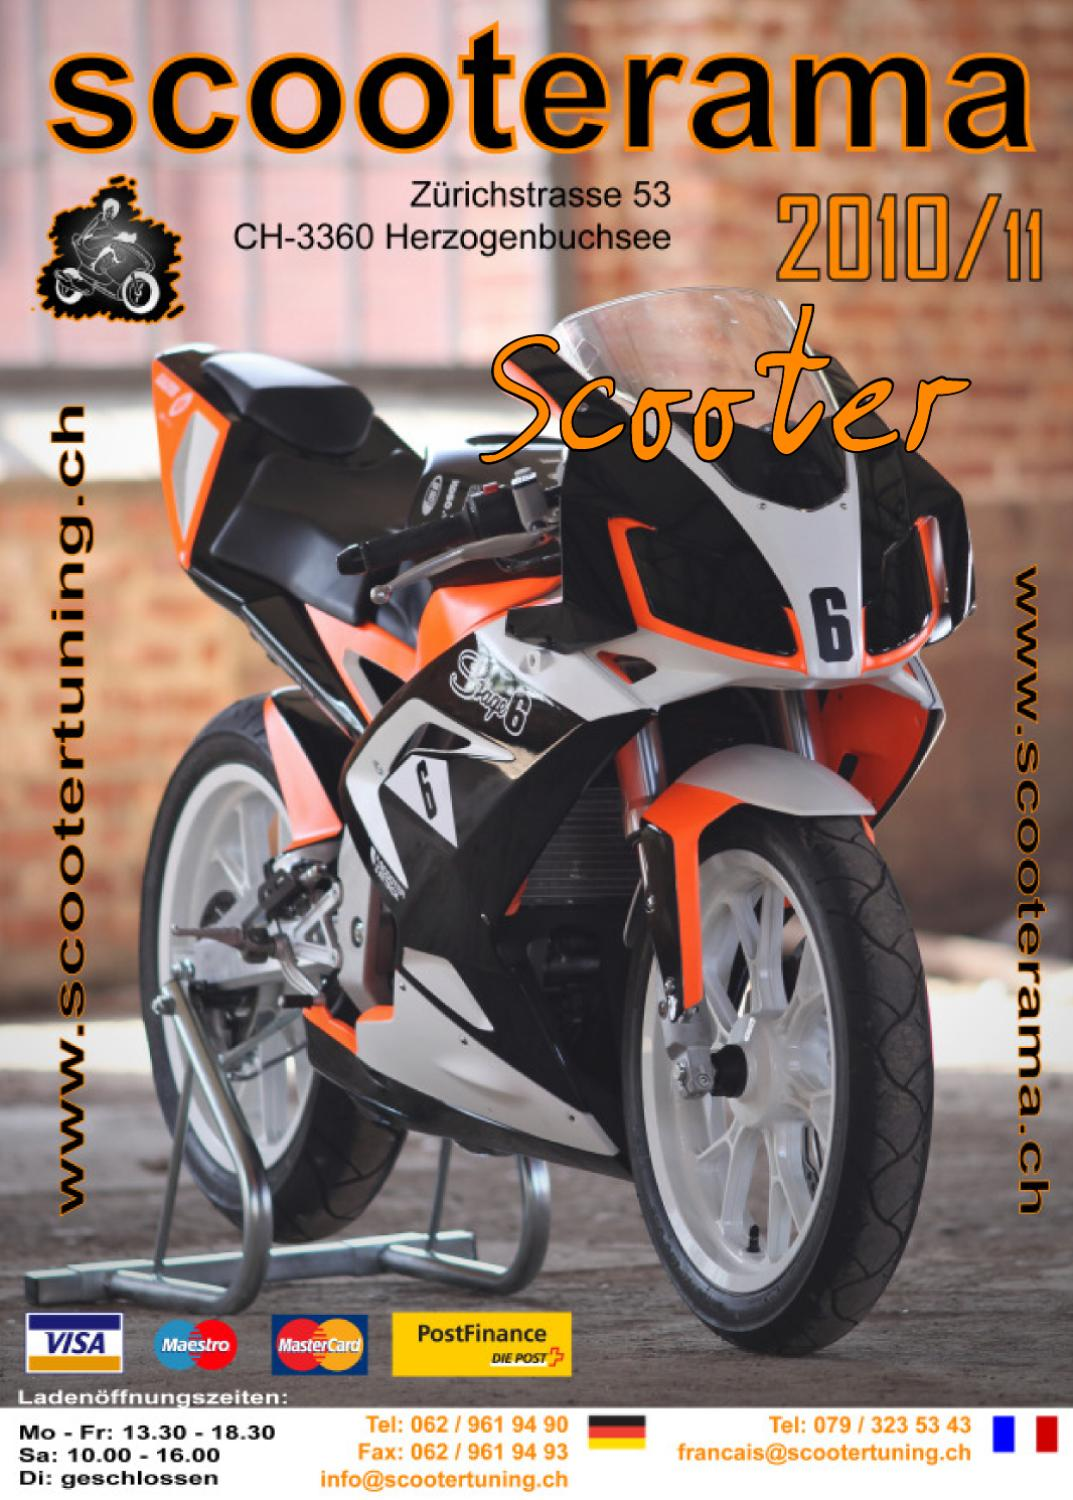 air Bj 97-00 50ccm Marques Cylindre Kit Naraku PEUGEOT SPEEDFIGHT 50 1 AC refroid